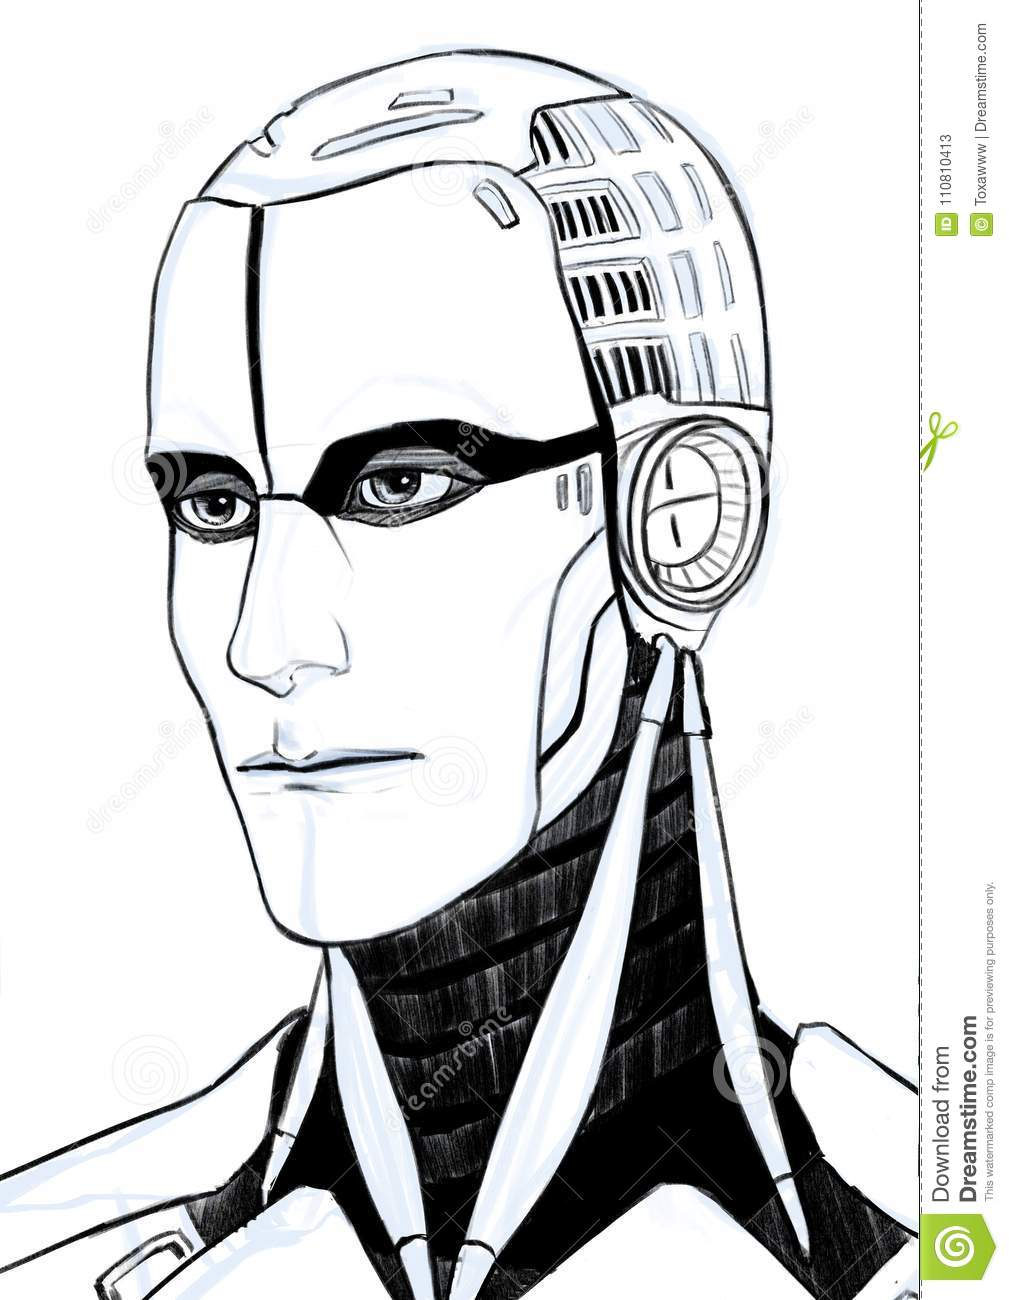 Futuristic cyborg illustration portrait isolated at white background